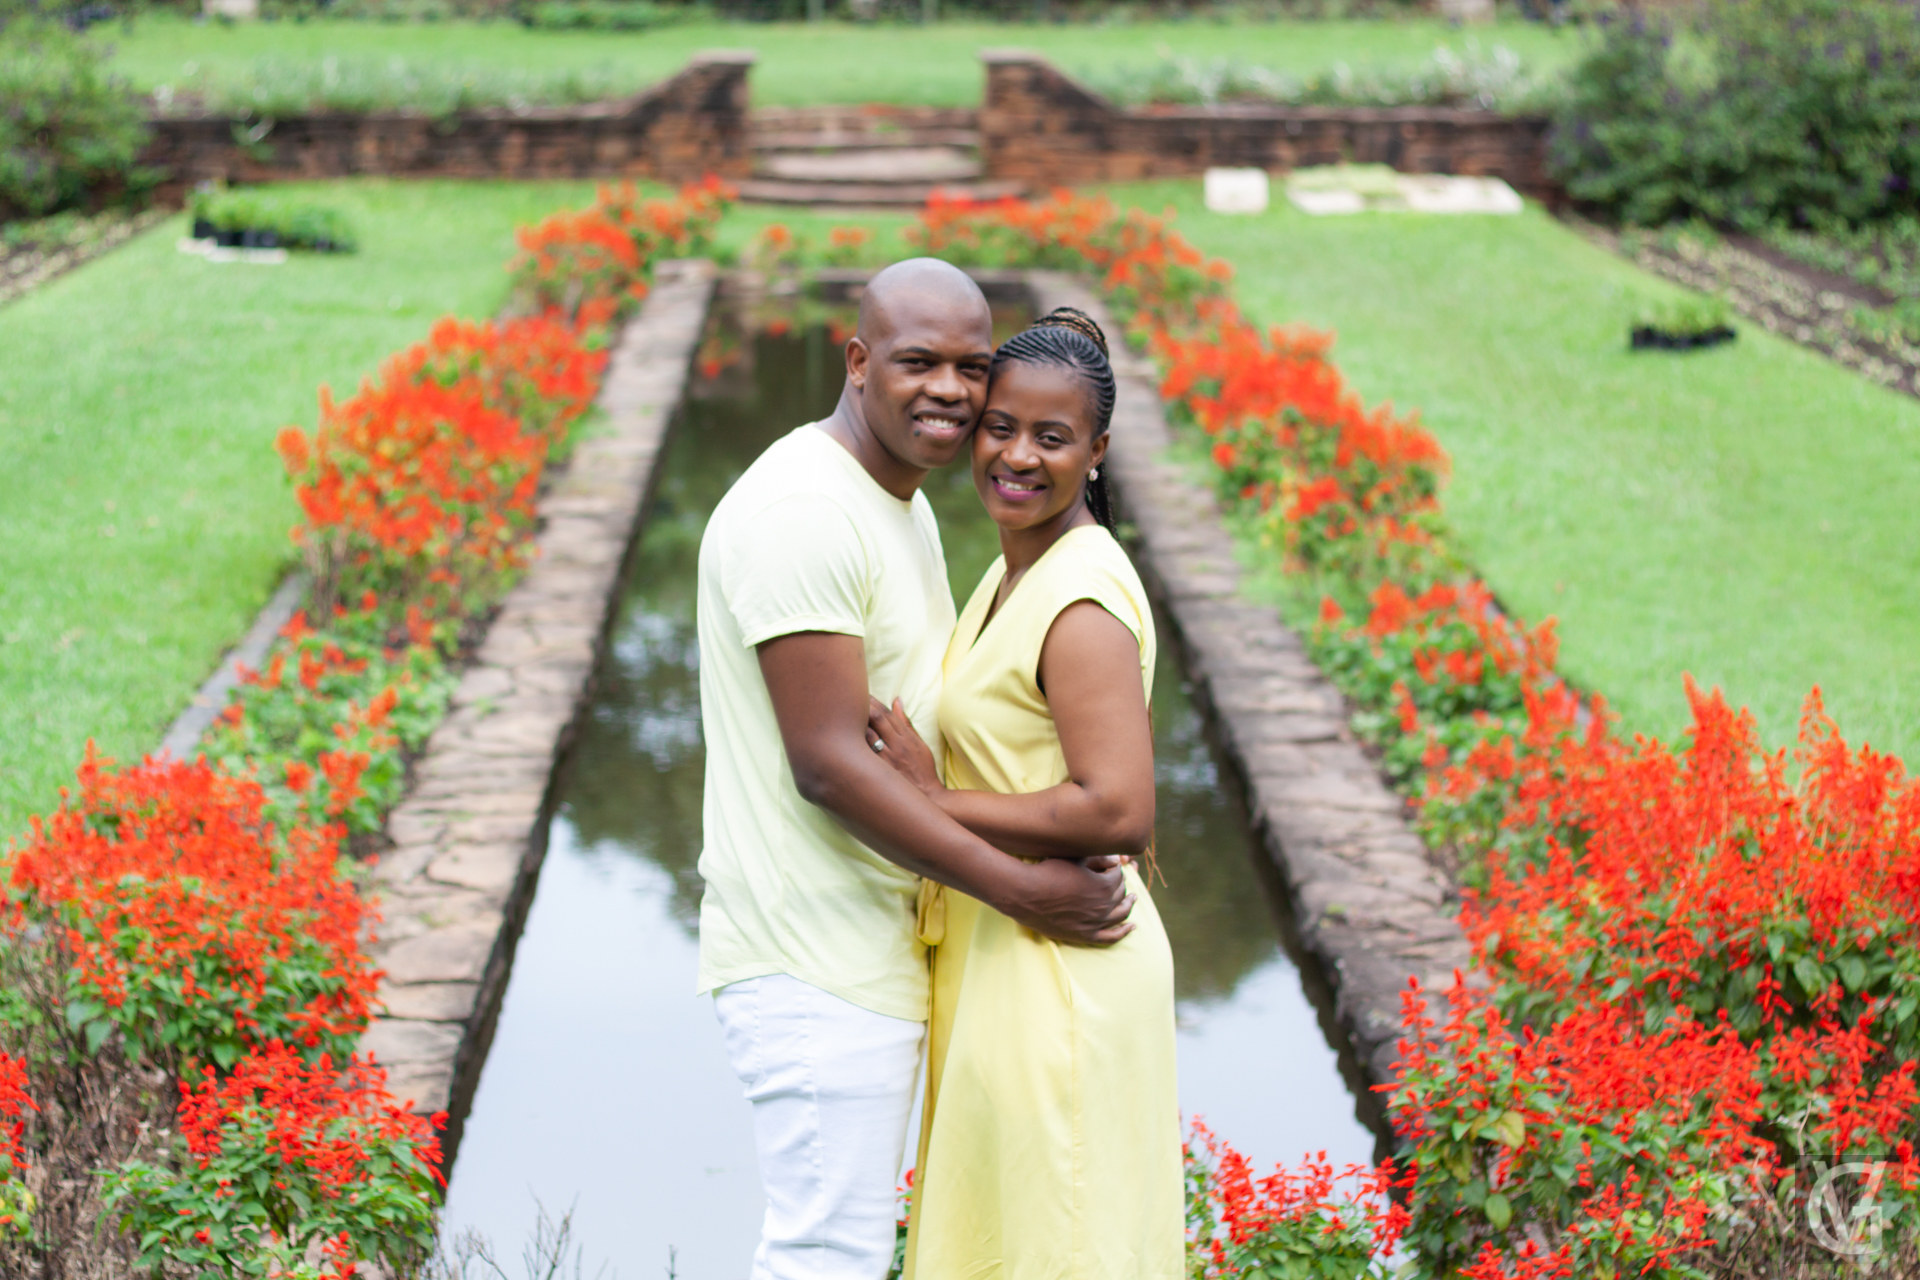 A couple in the Durban Botanic Gardens surrounded by red flowers